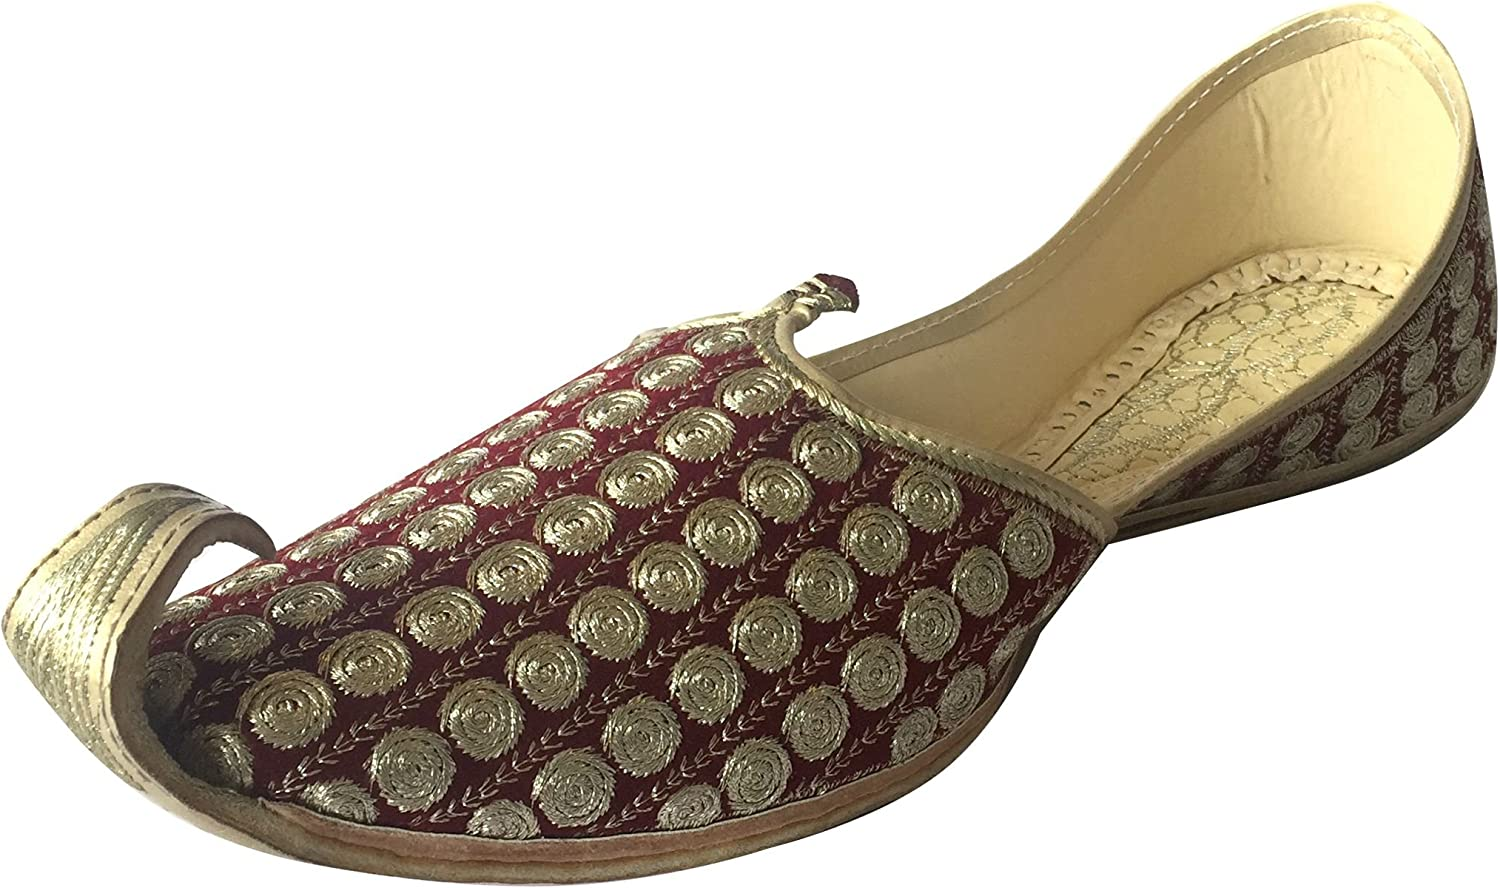 Step n Style Men's Khussa shoes Punjabi Jutti Rajasthani Mojari Kolhapuri Jaipuri shoes